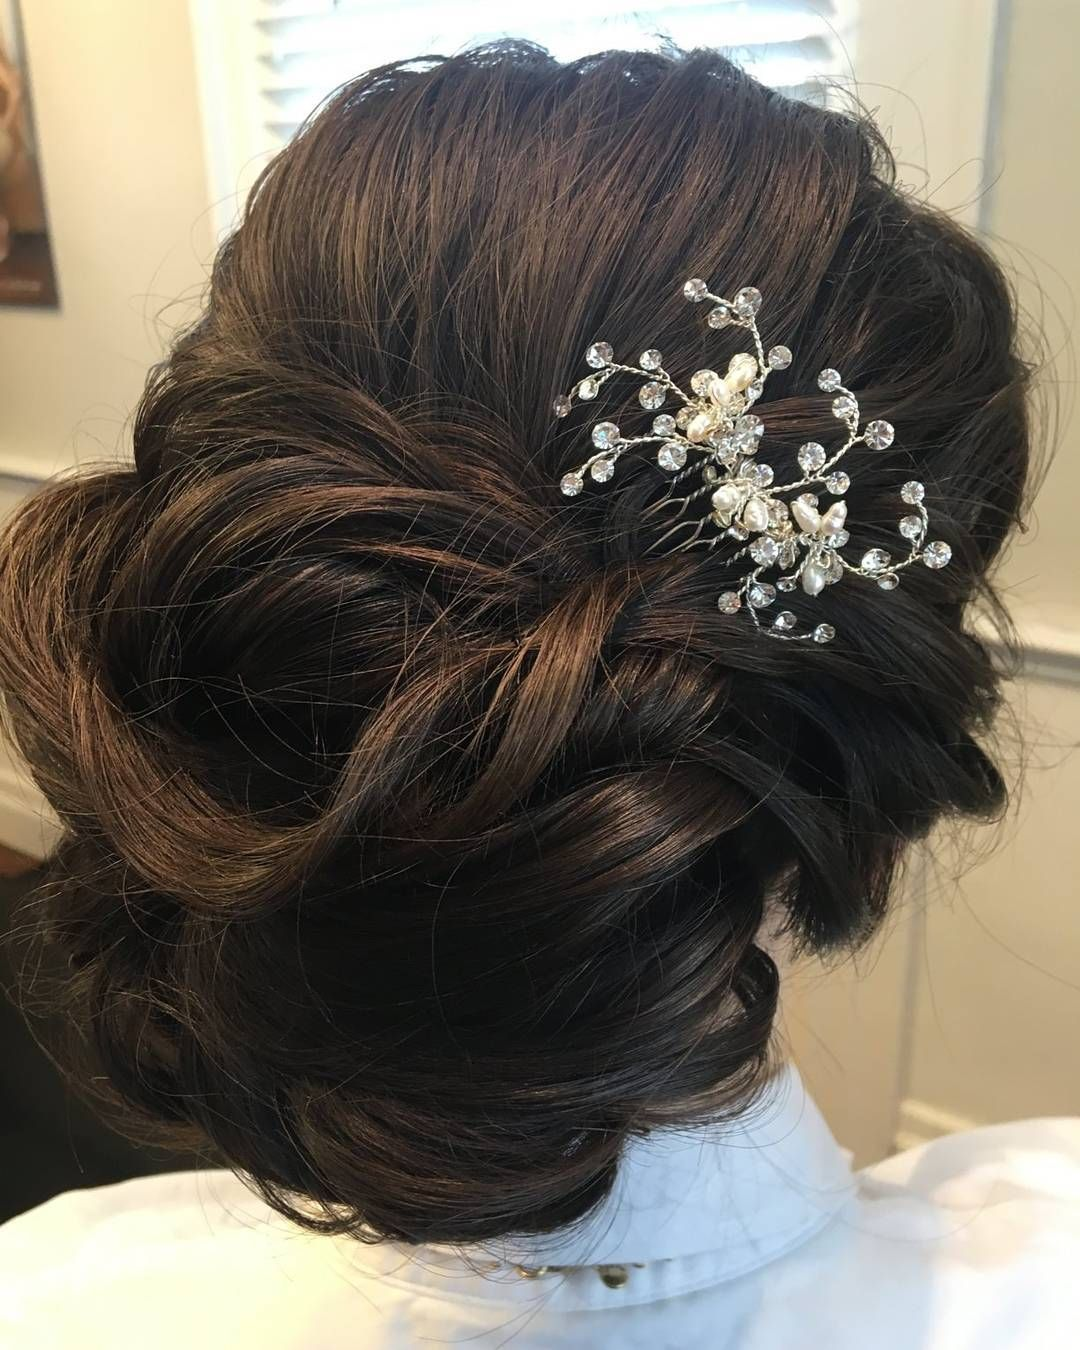 The addition of that comb the perfect final touch hair trial by